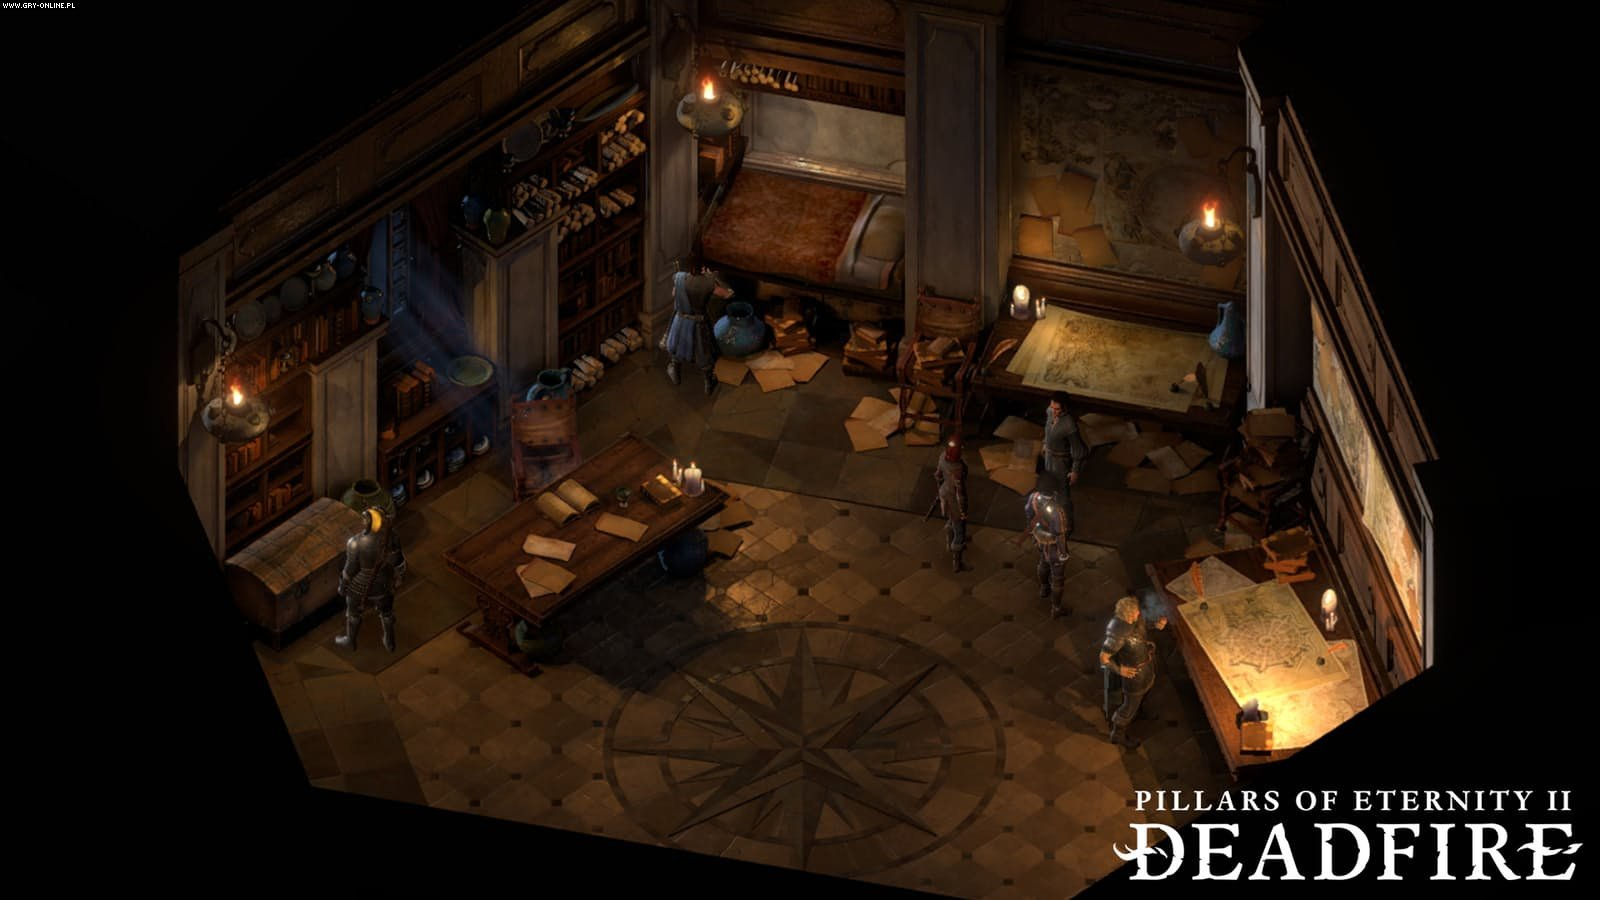 Pillars of Eternity II: Deadfire PC, PS4, XONE, Switch Gry Screen 22/27, Obsidian Entertainment, Versus Evil